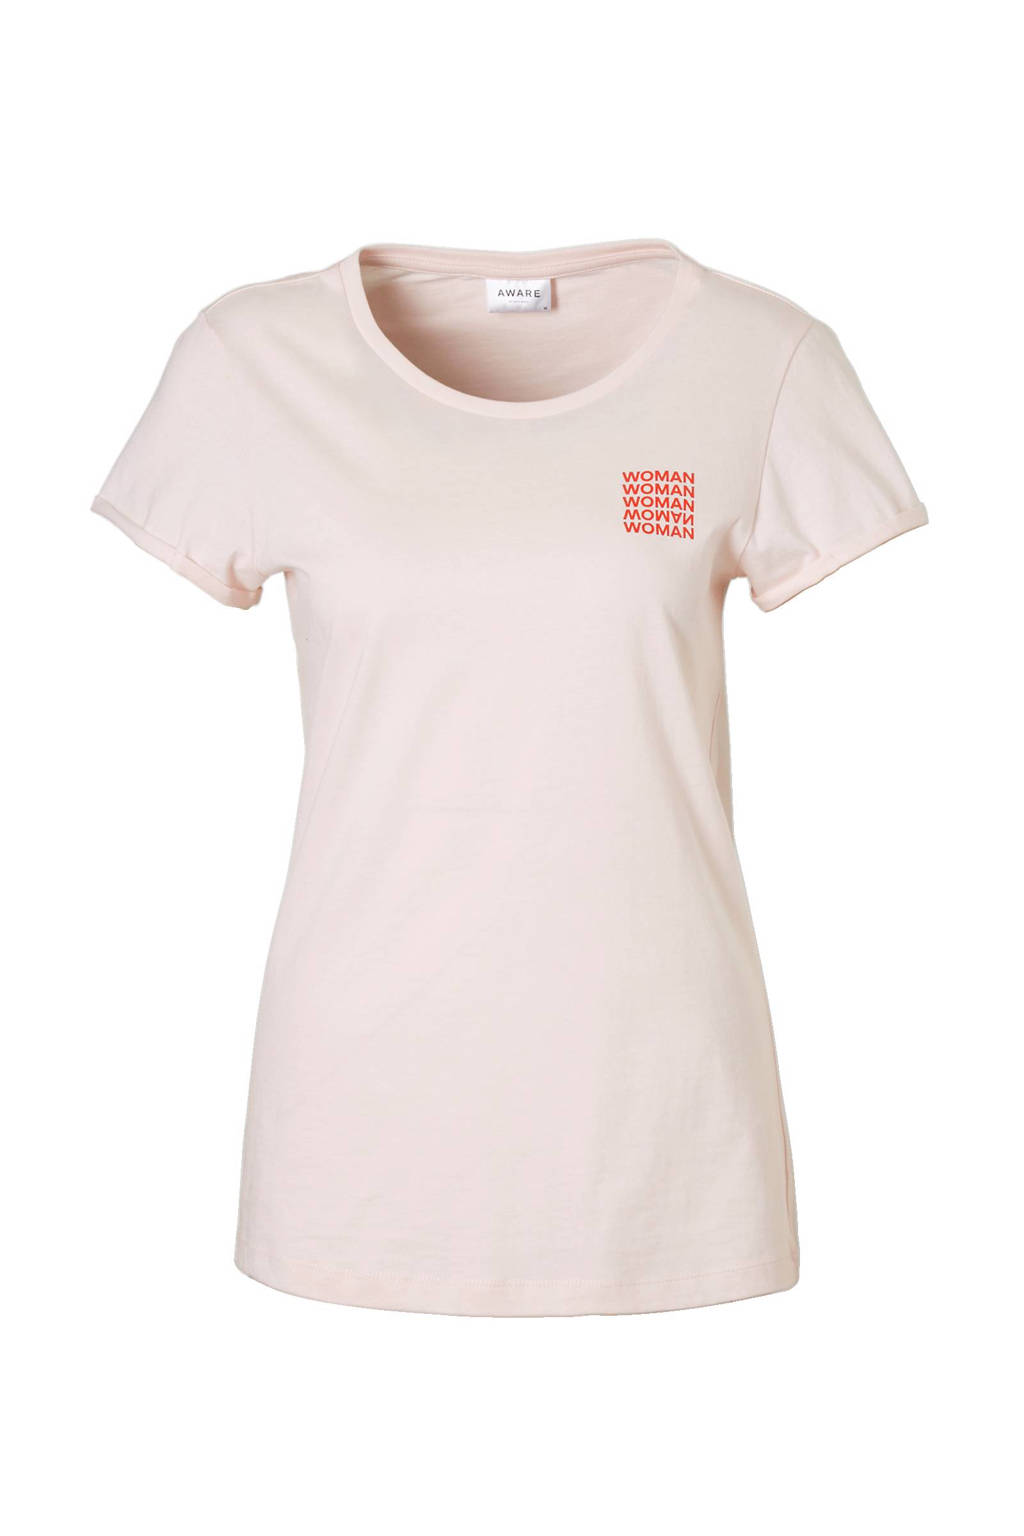 VERO MODA International Women's Day T-shirt, Roze